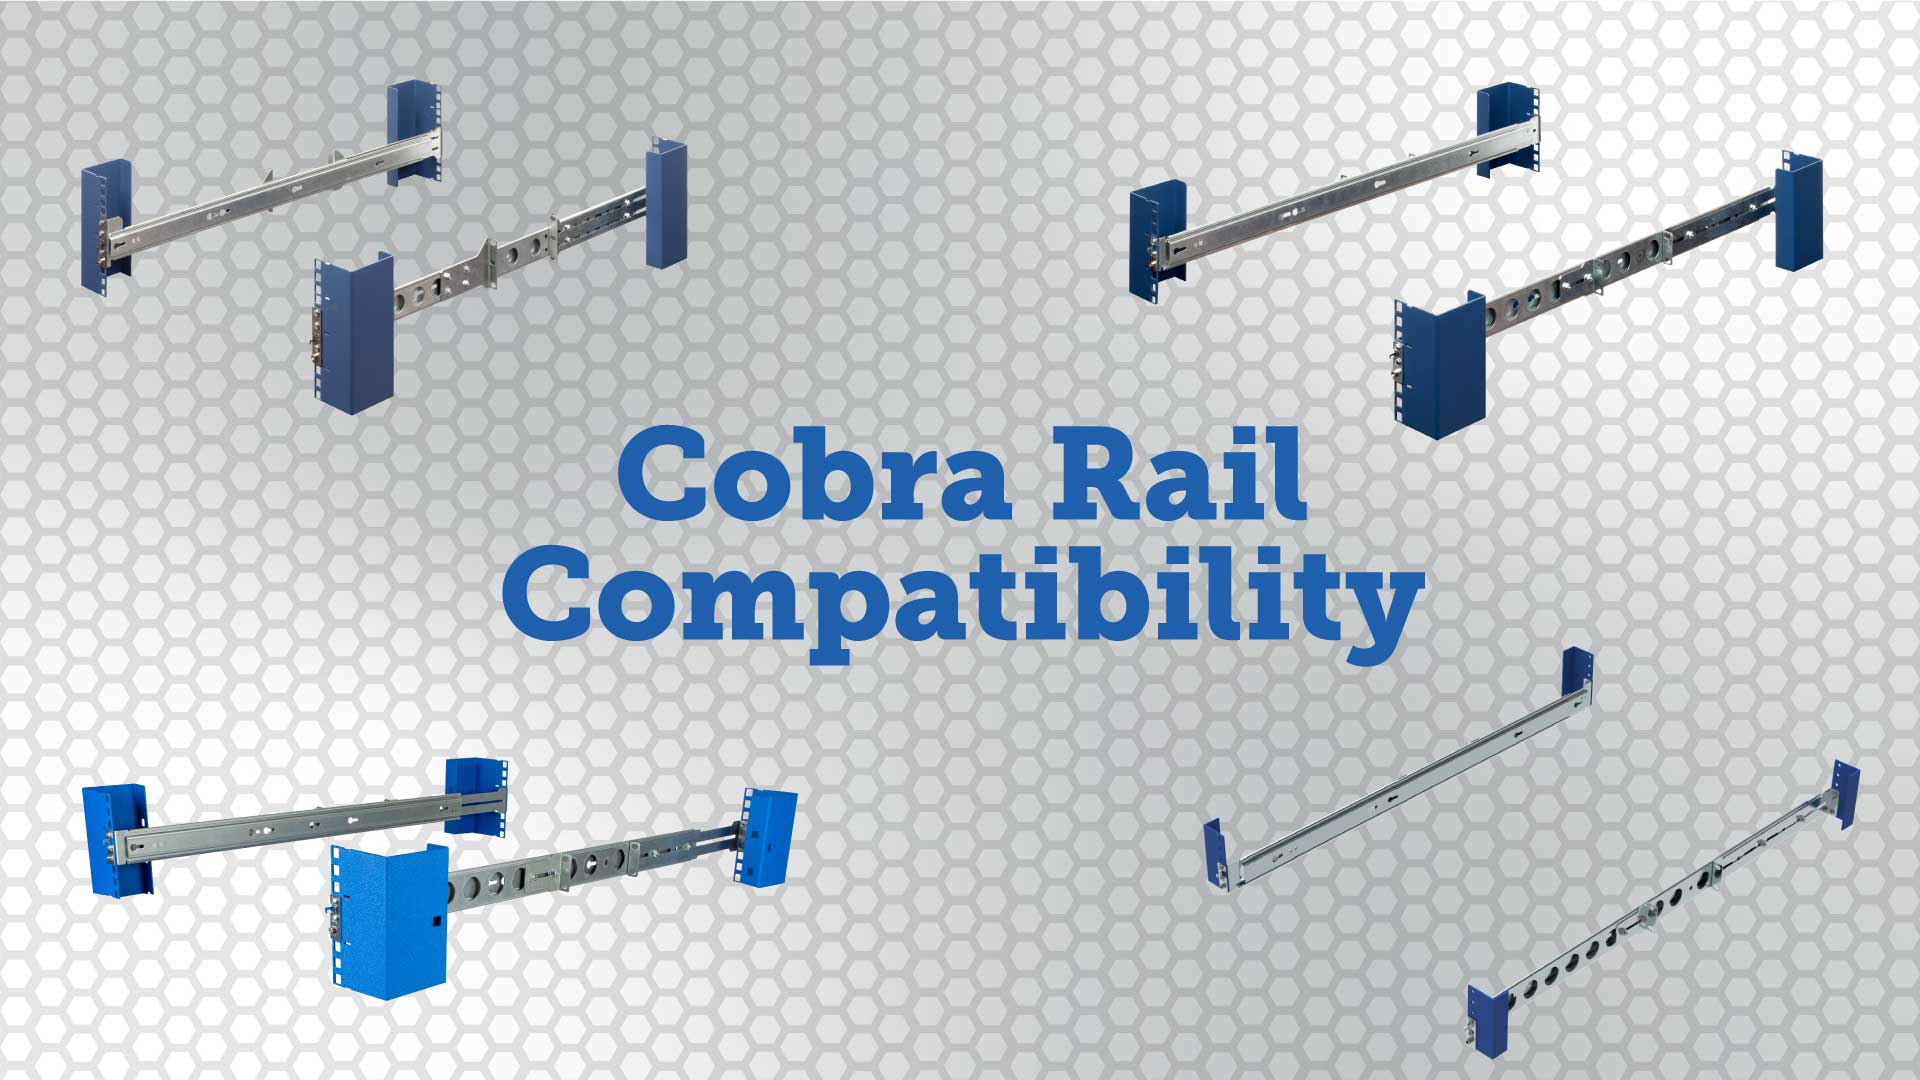 RackSolutions introduces Cobra Rails for Dell servers